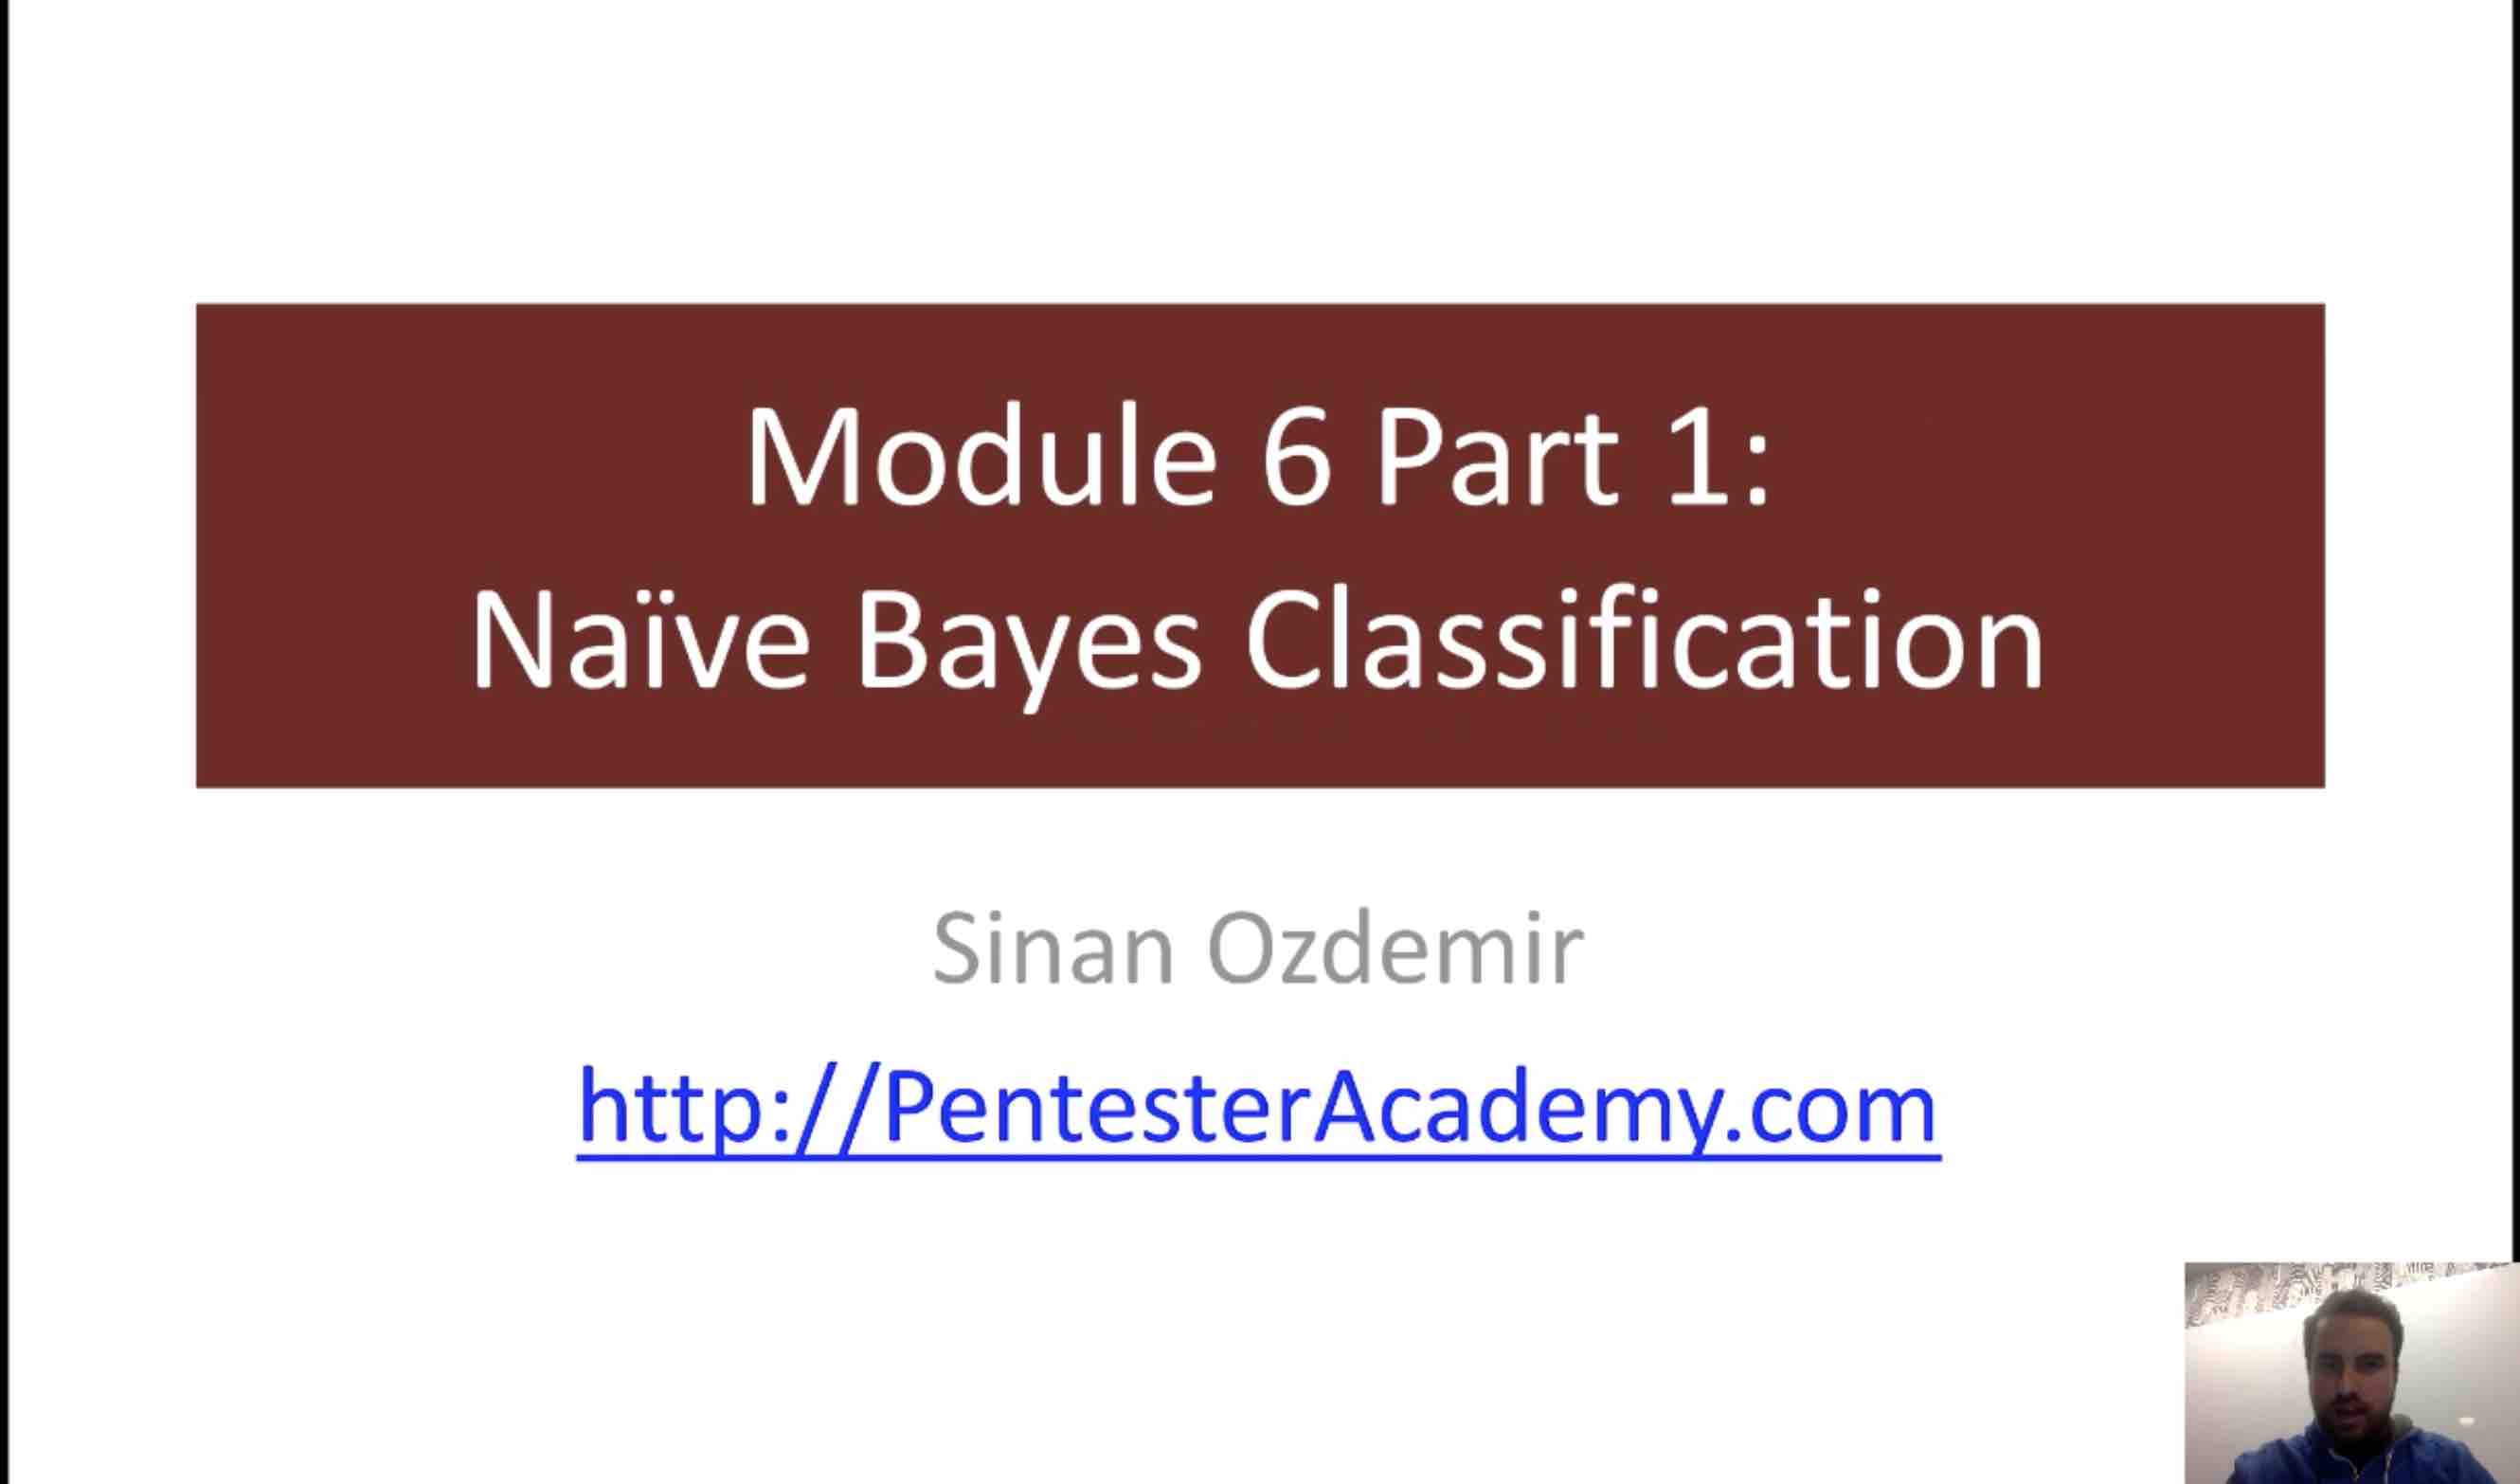 Module 6: Naive Bayes Classification Part 1